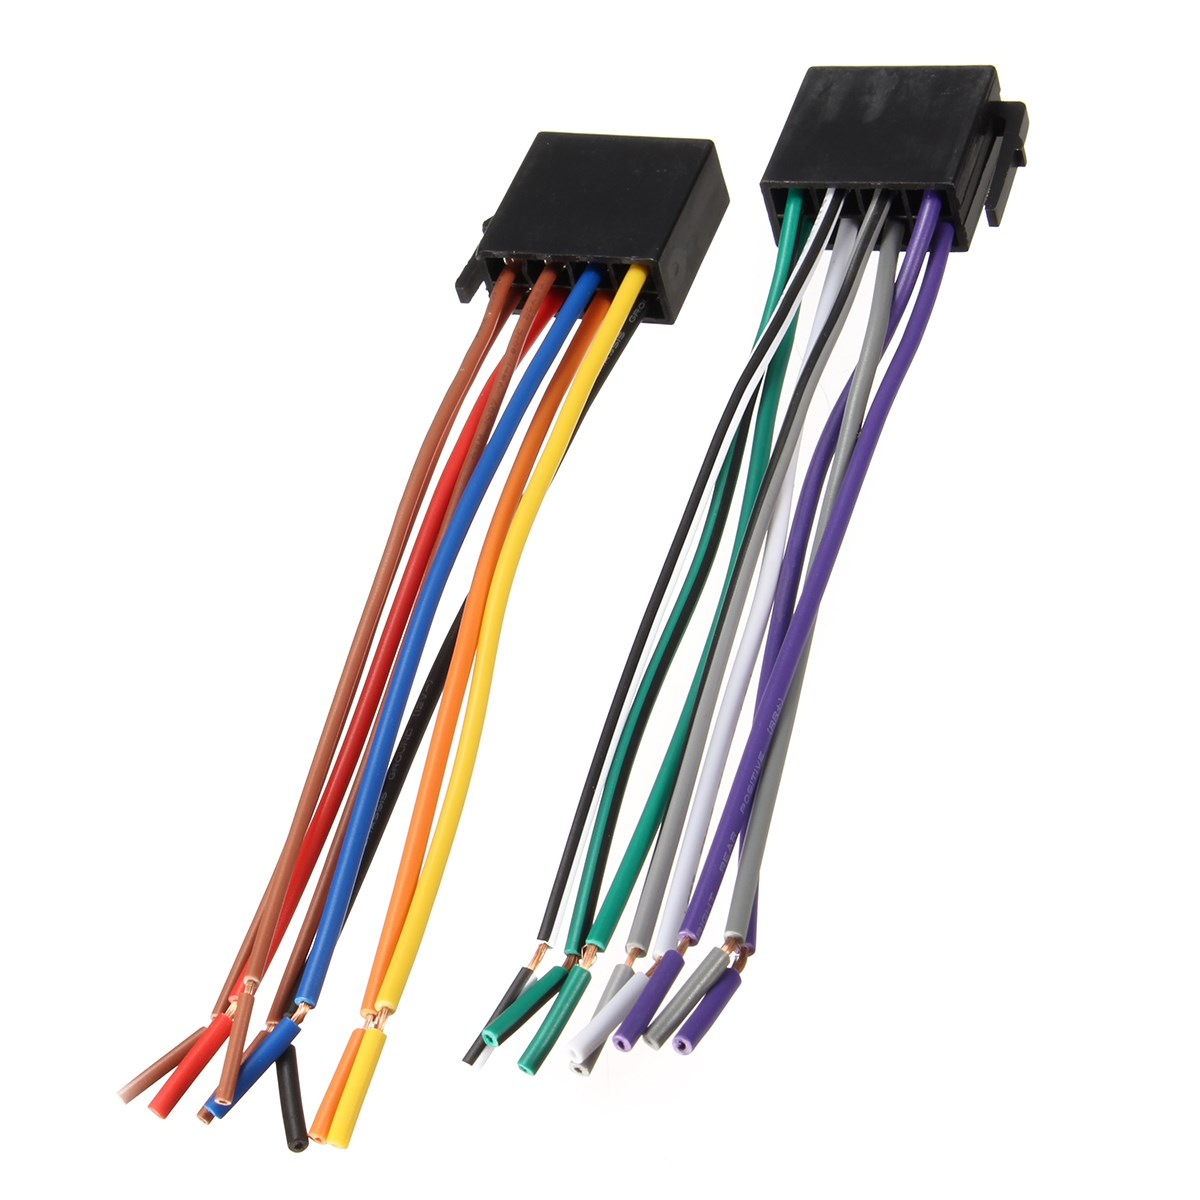 Universal Wire Harness Adapter Connector Cable Radio Wiring Connector Plug for Auto Car Stereo System universal wire harness adapter connector cable radio wiring universal stereo wiring harness at readyjetset.co